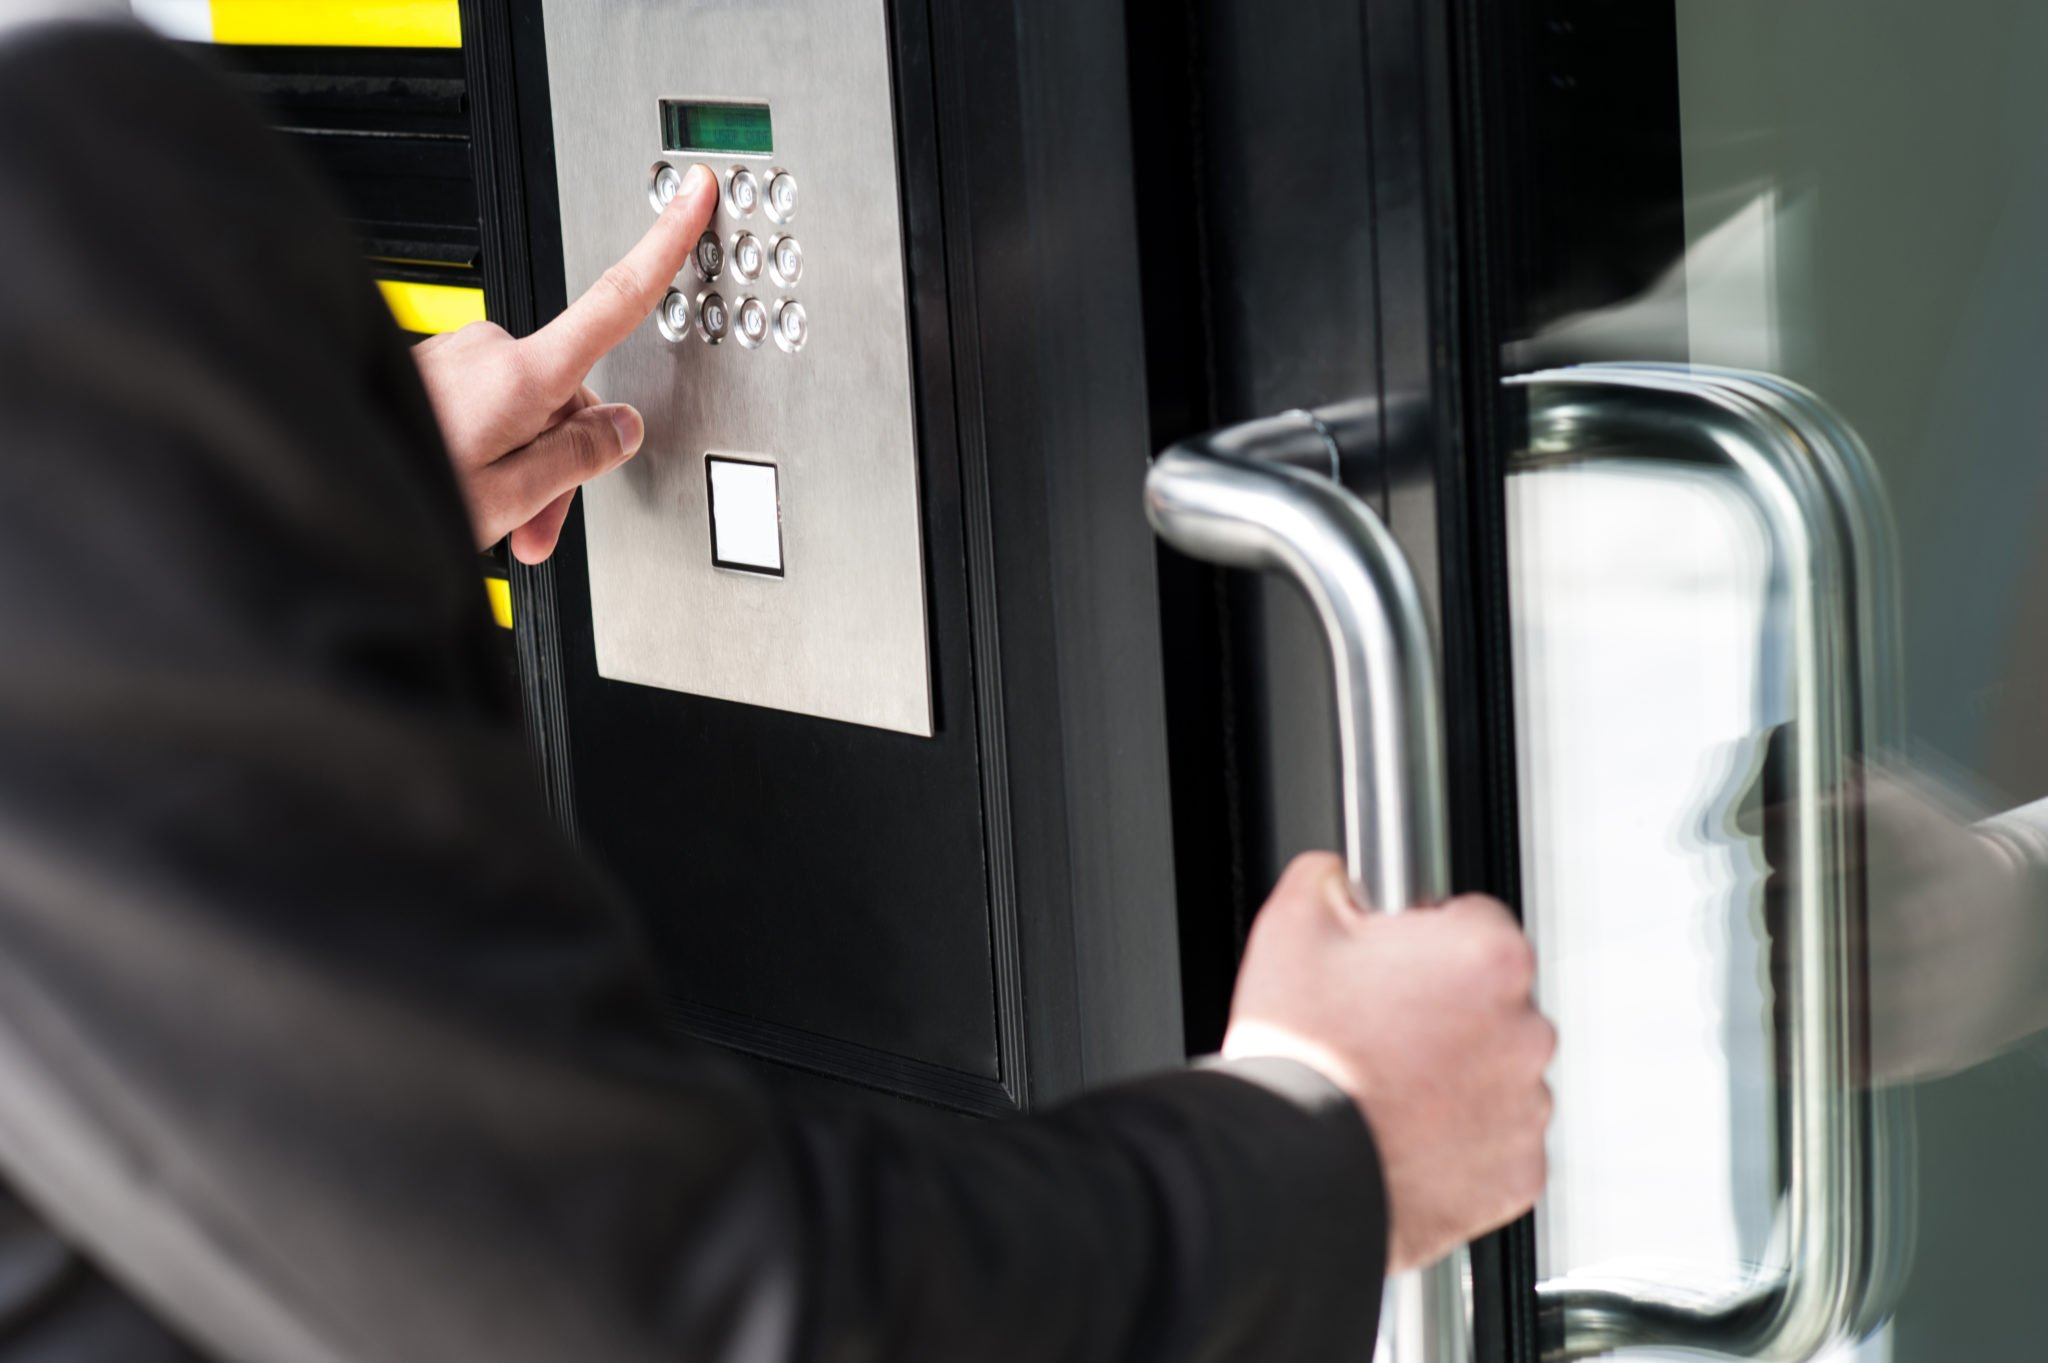 Commercial Security Systems Repair & Installation